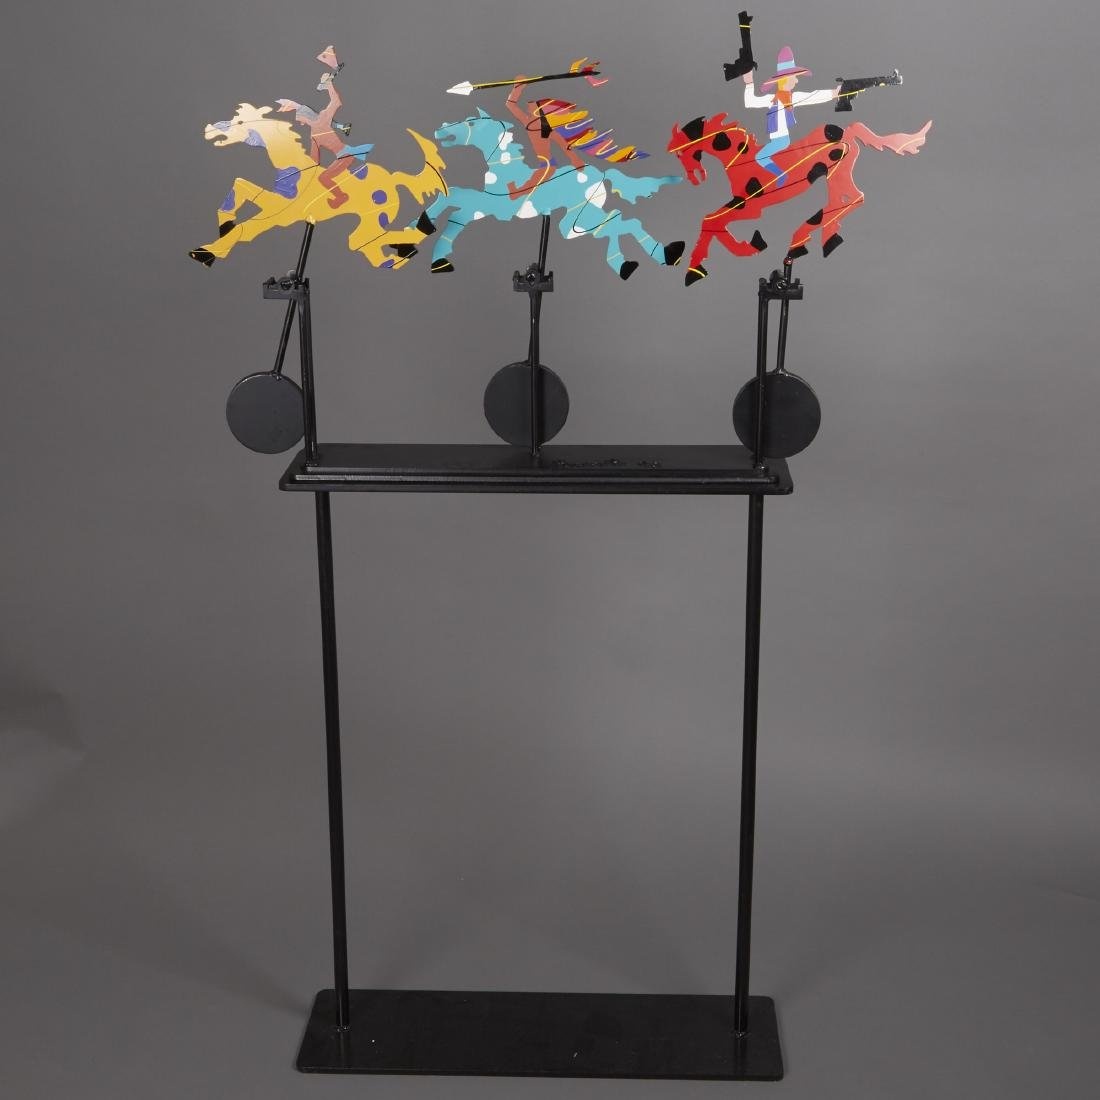 Frederick Prescott Kinetic Metal Sculpture